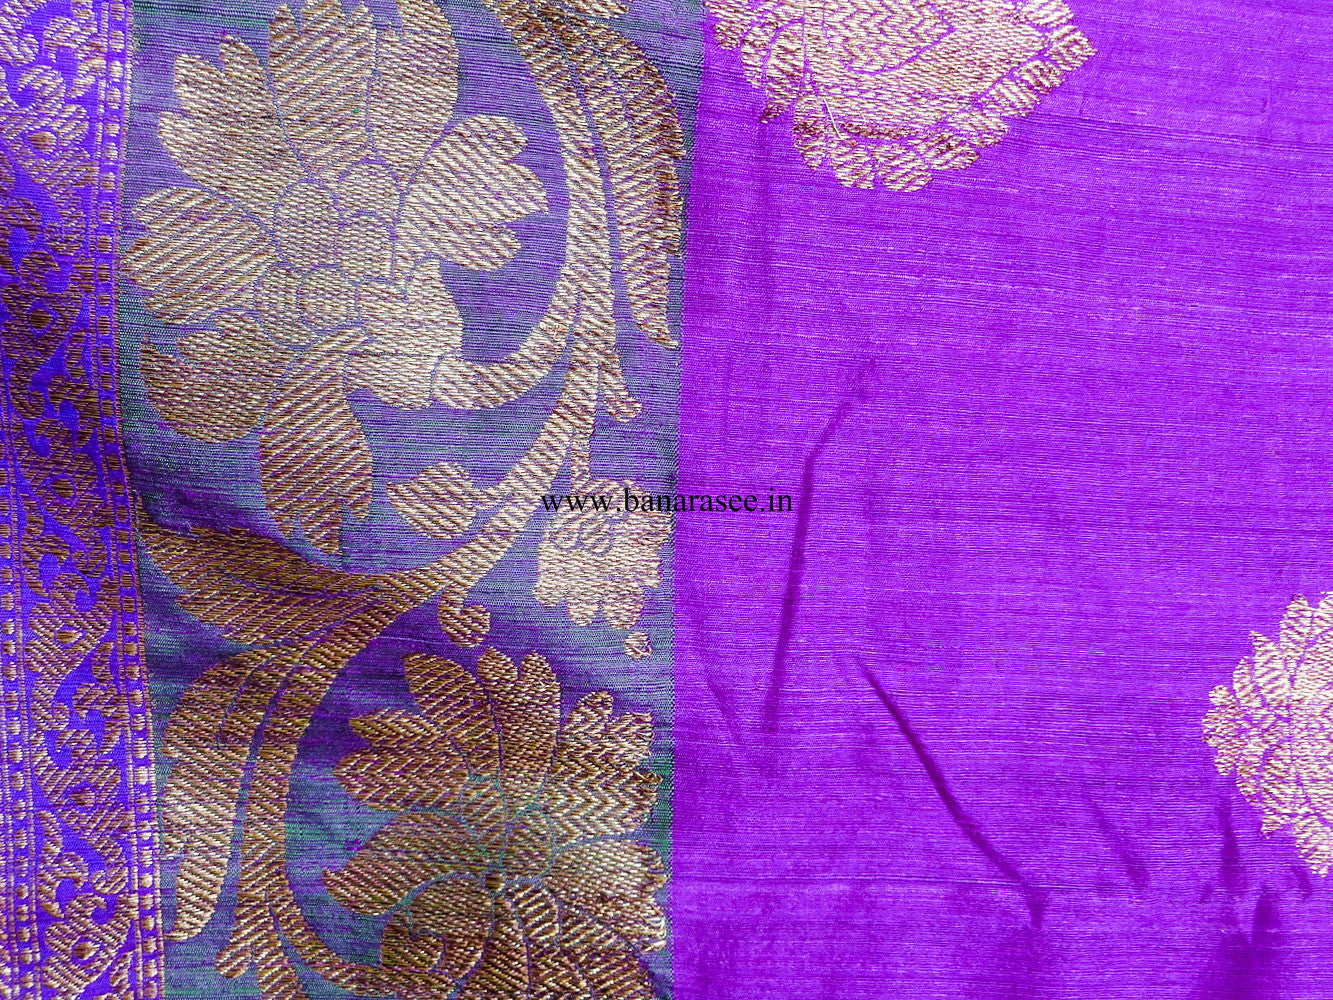 Banarasee/Banarasee Pure Handloom Dupion Silk Sari With Broad Border-Purple